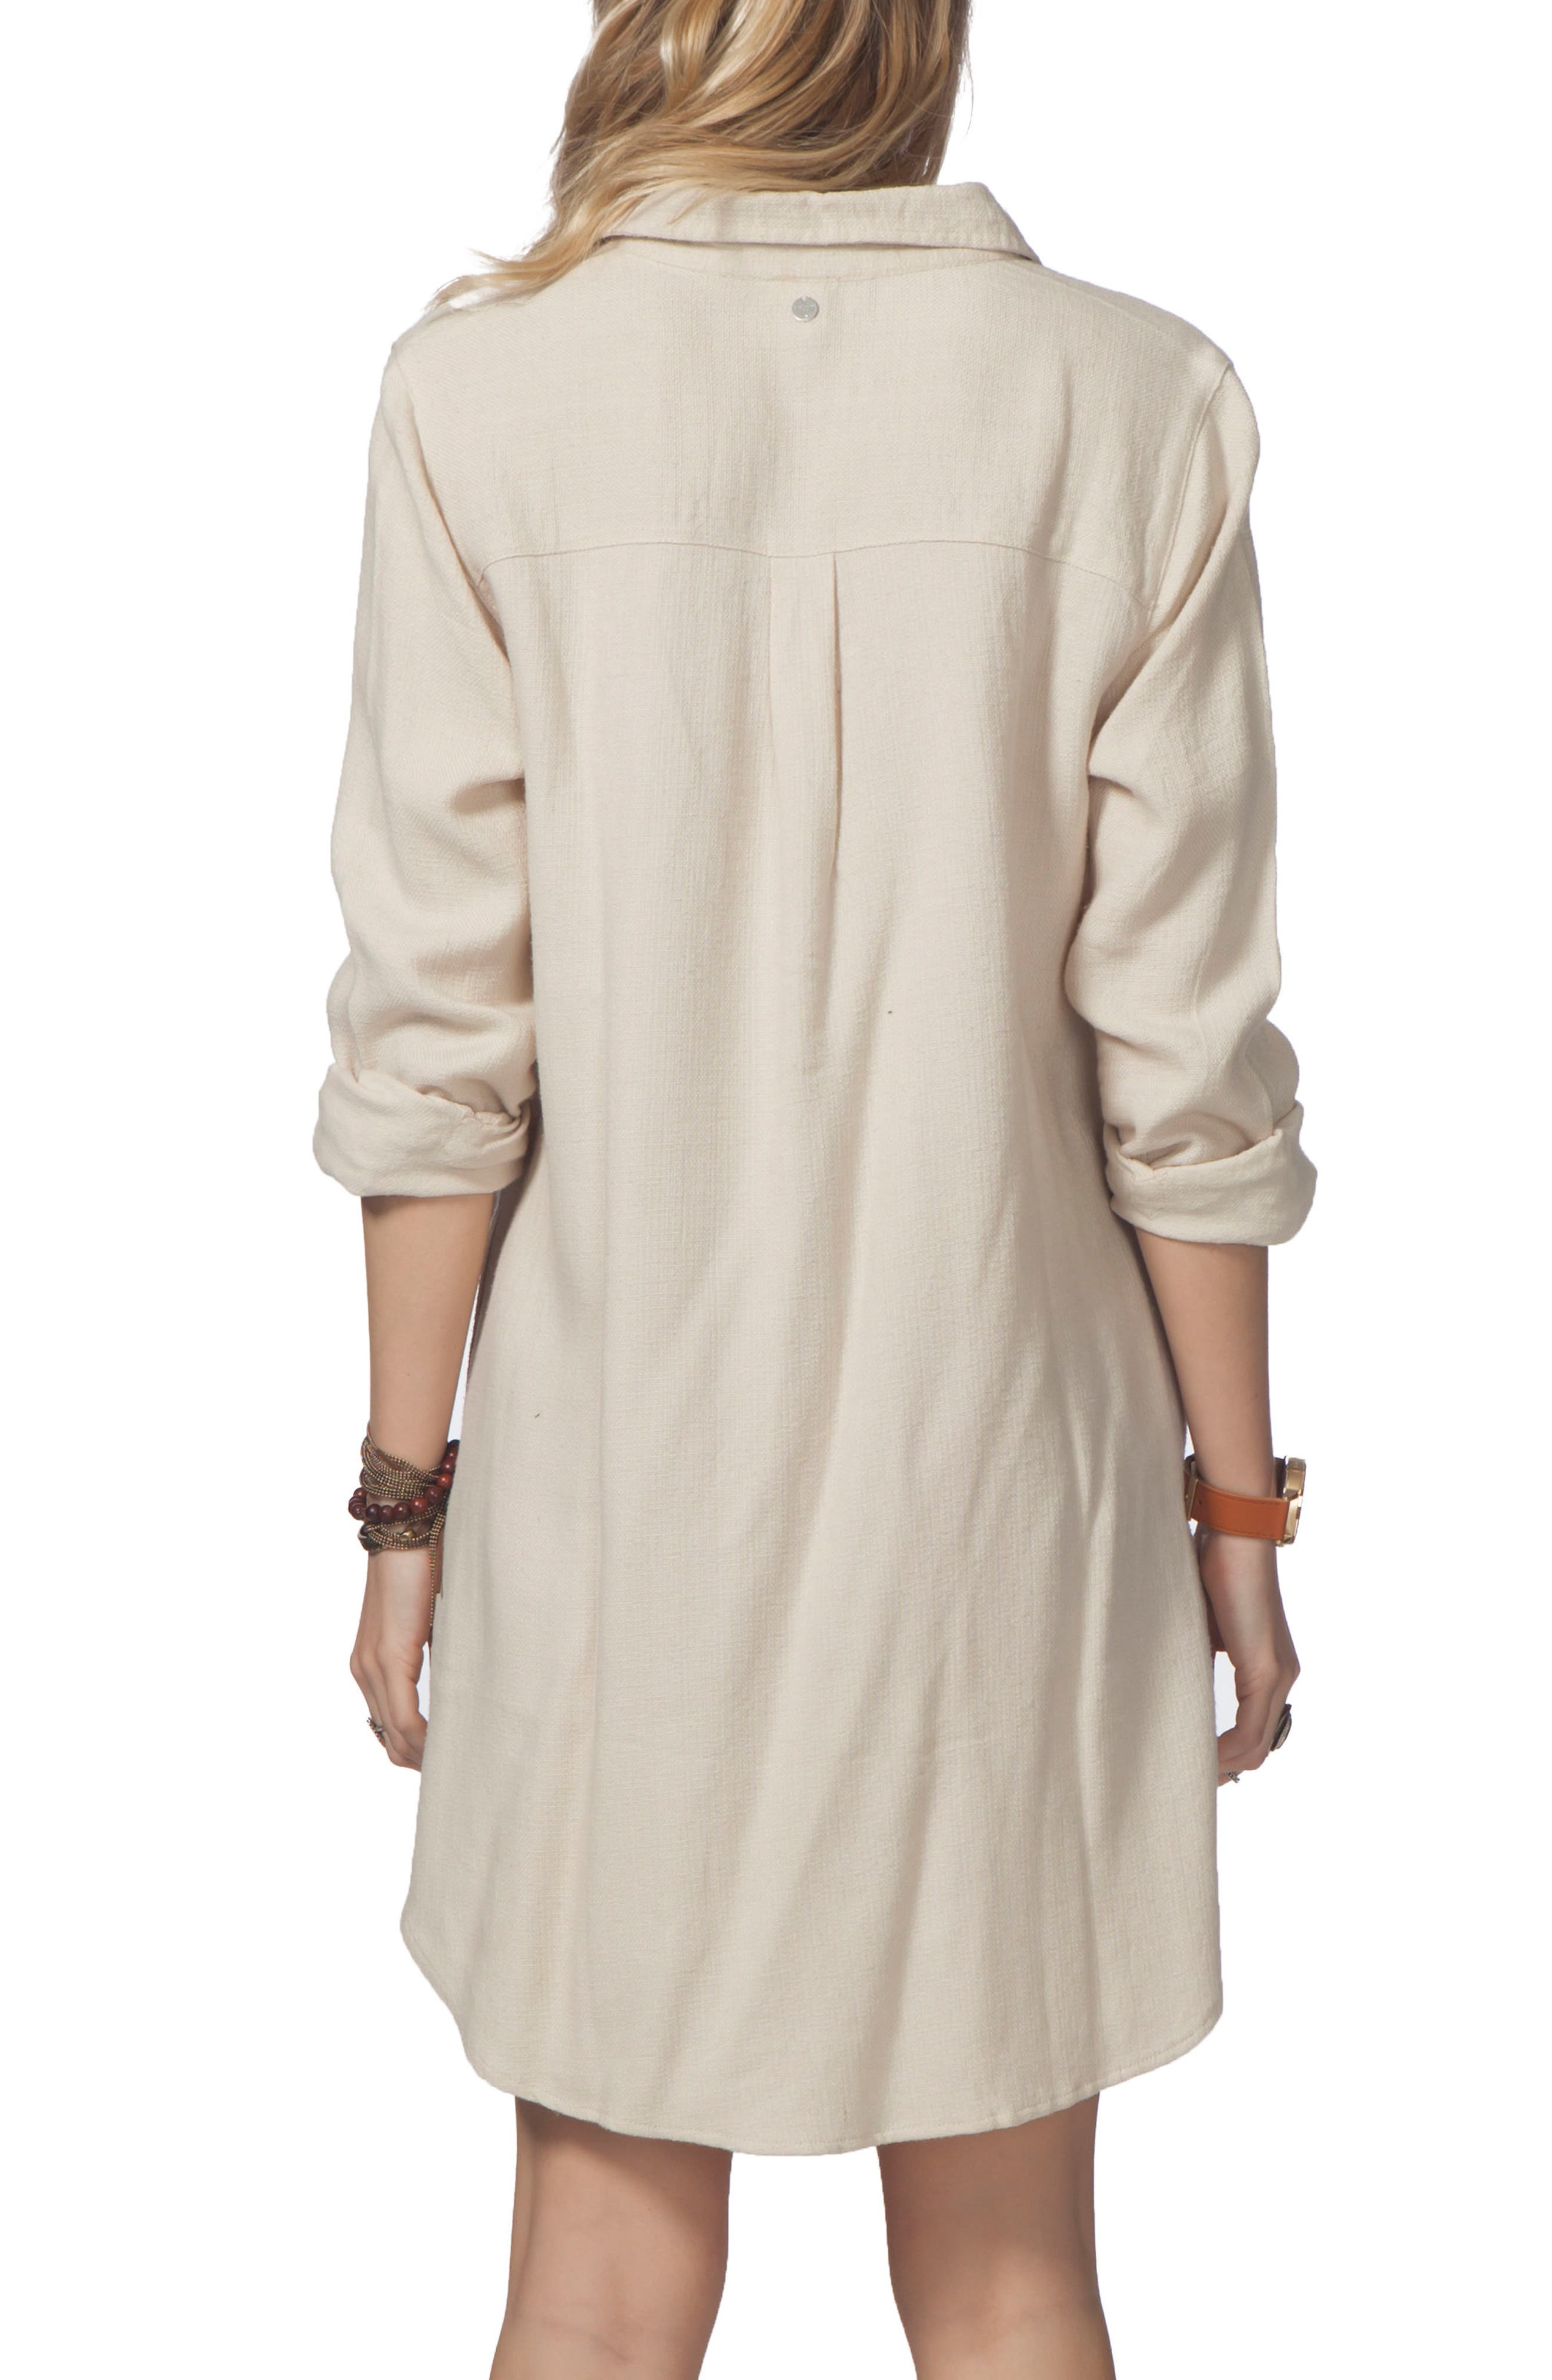 Ri Curl Lizzie Shirtdress,                             Alternate thumbnail 2, color,                             Vanilla